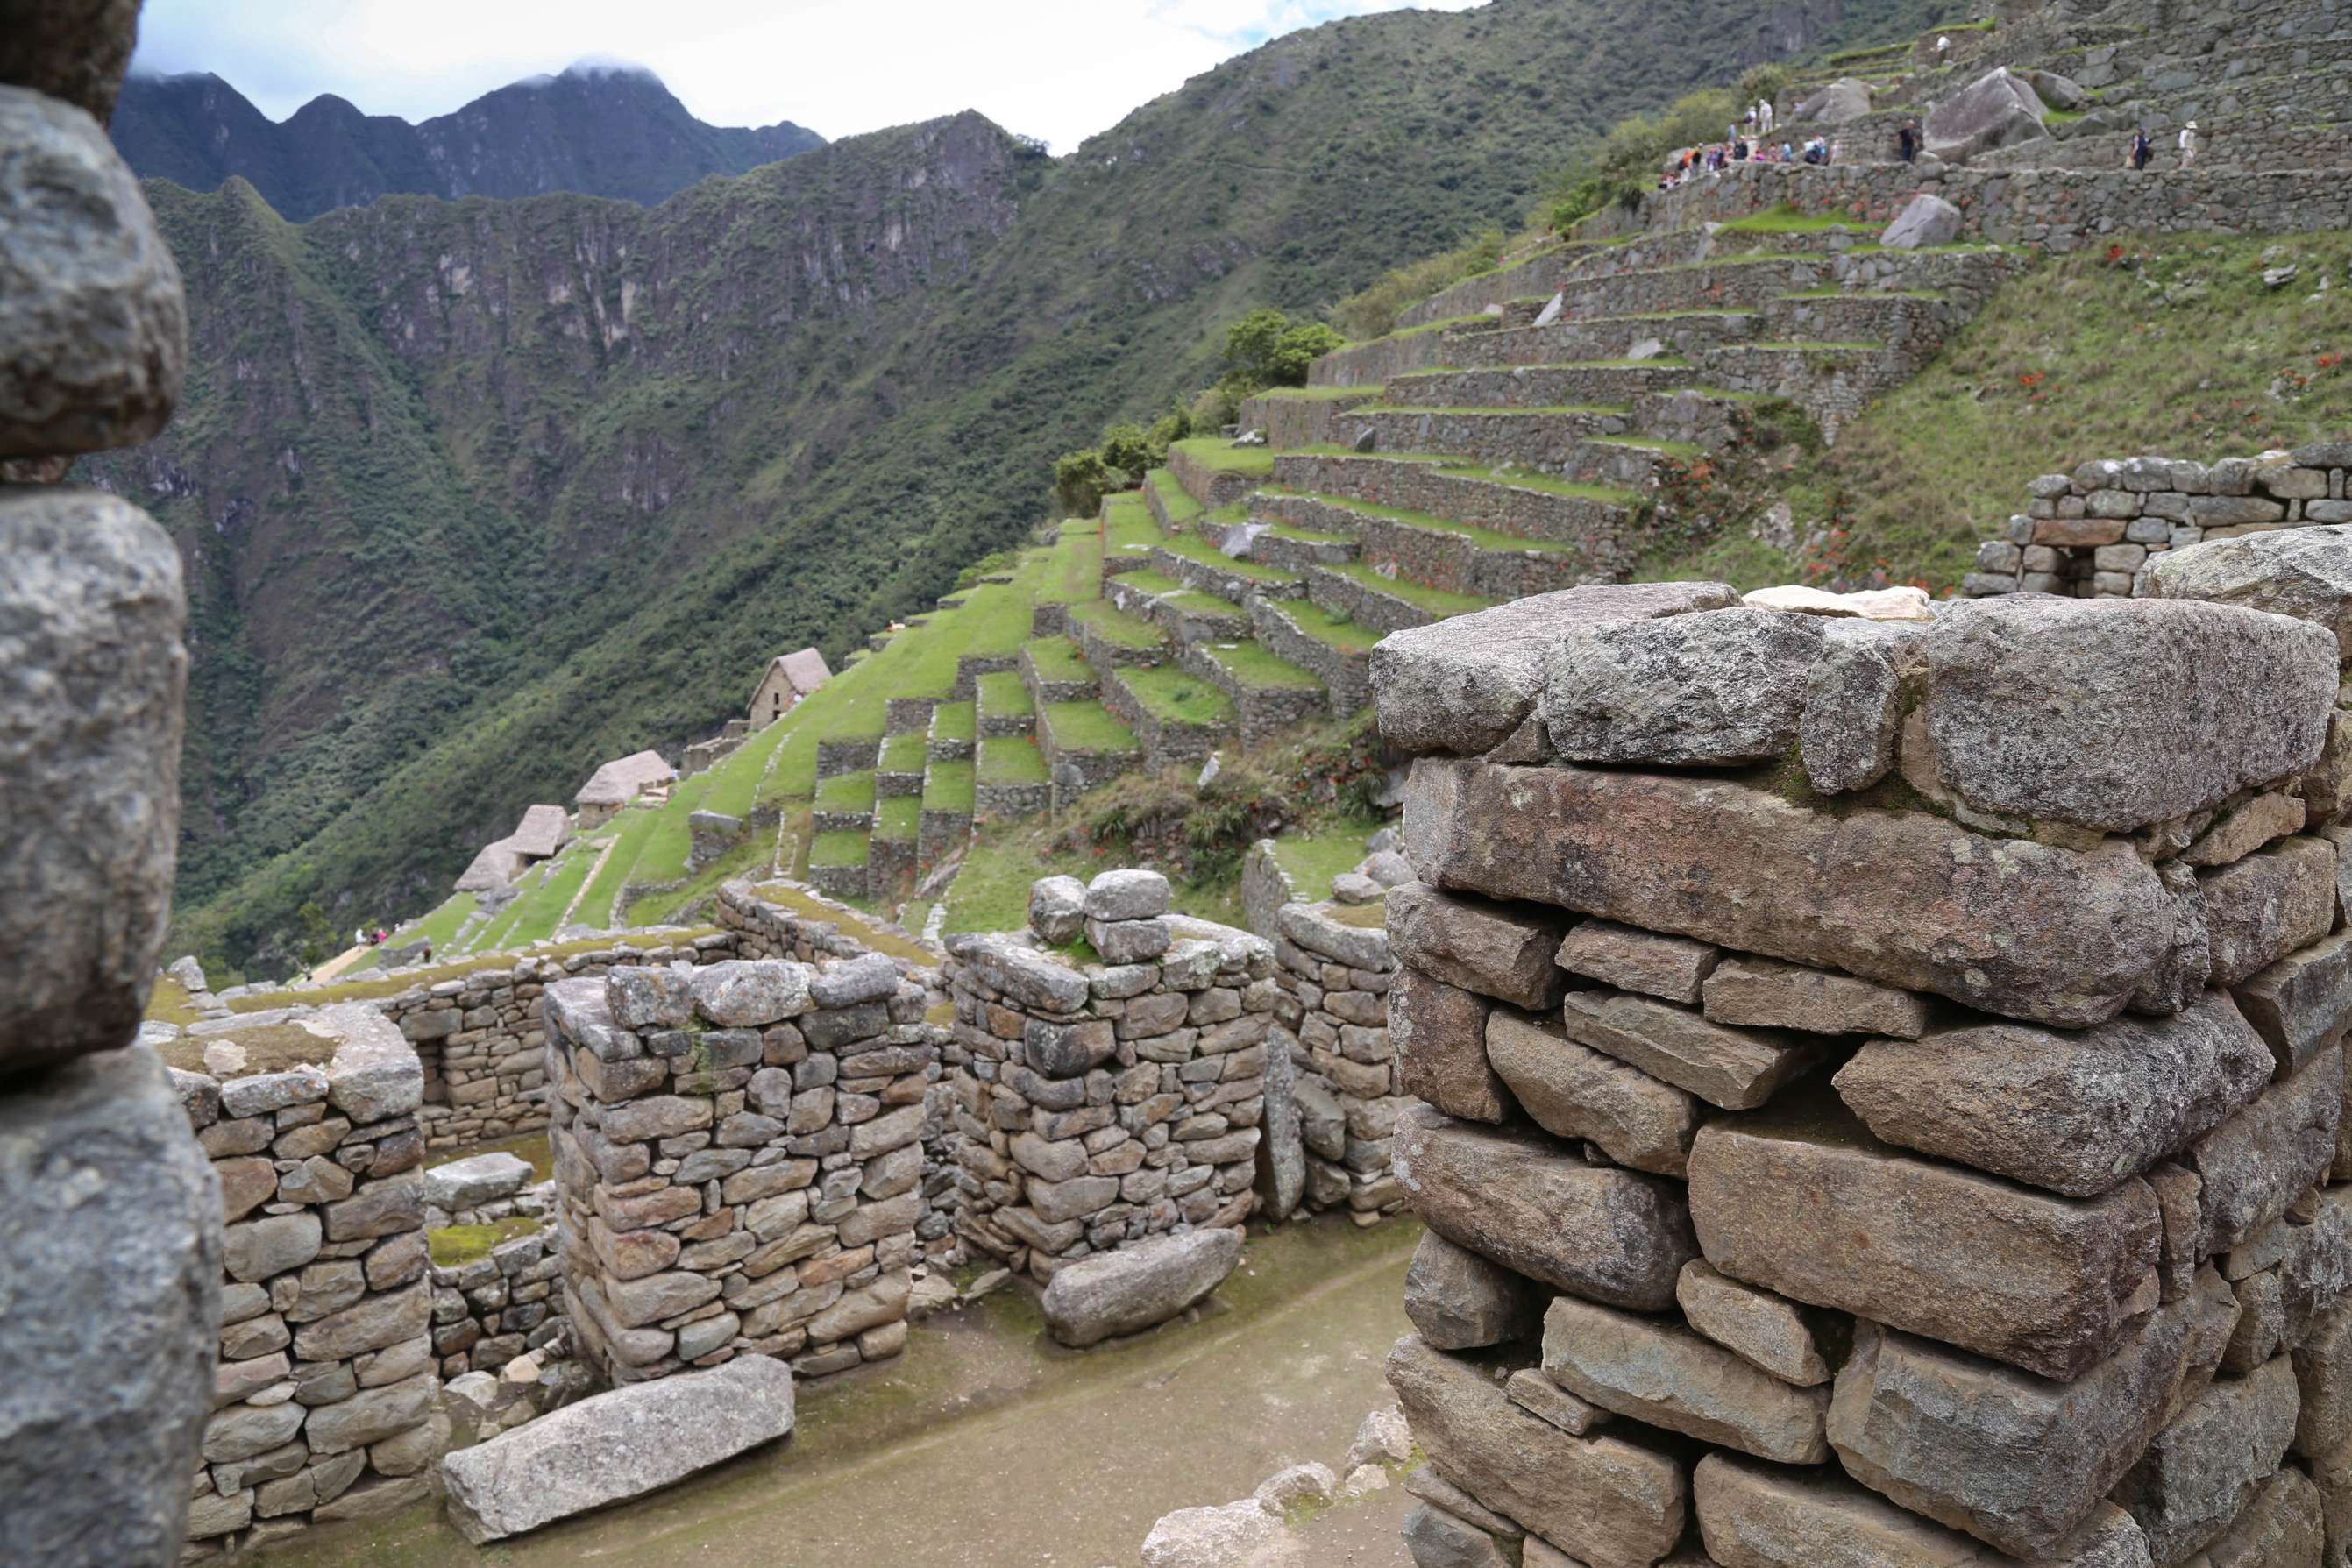 Terraces are one of the major features at Machu Picchu. They act as anchors to the hilldsides, provide an area for raising food crops and are ideal for handling 80 inches of rainfall and runoff the area gets every year.